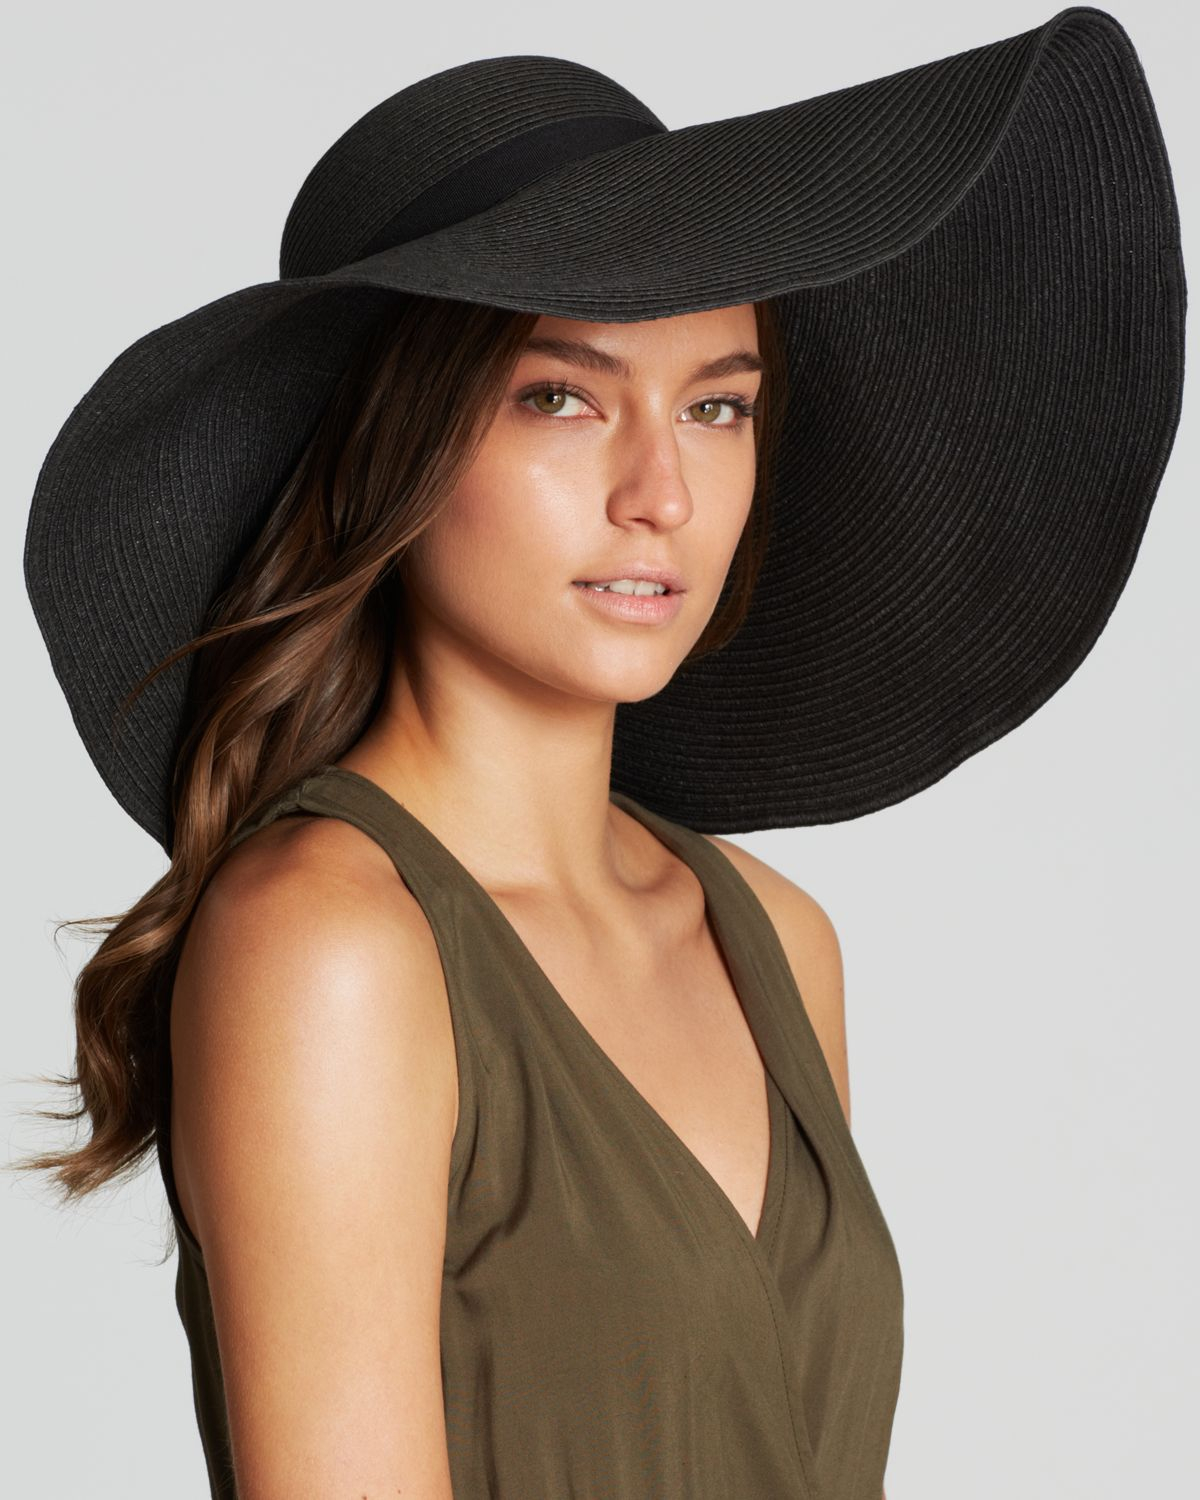 Fashionable floppy hat